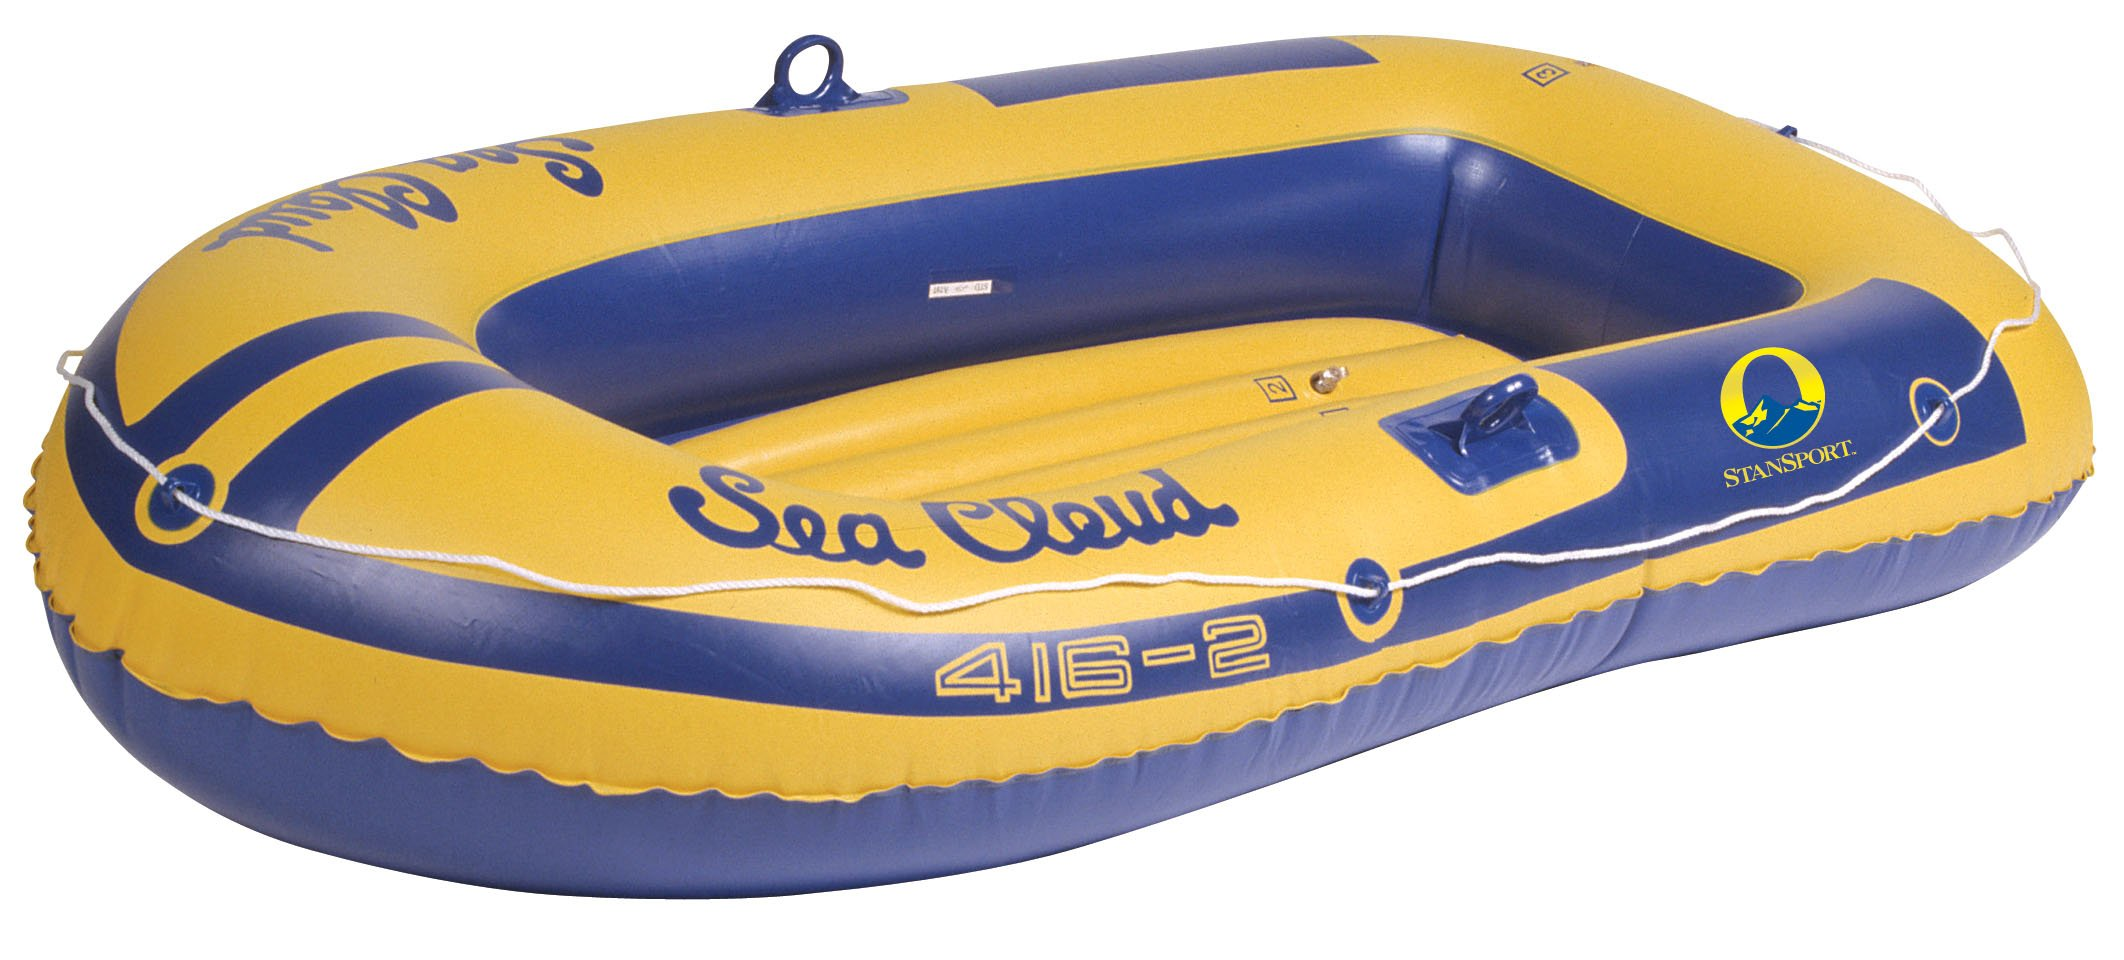 Stansport Sea Cloud Inflatable Vinyl Boat with 2 Seats